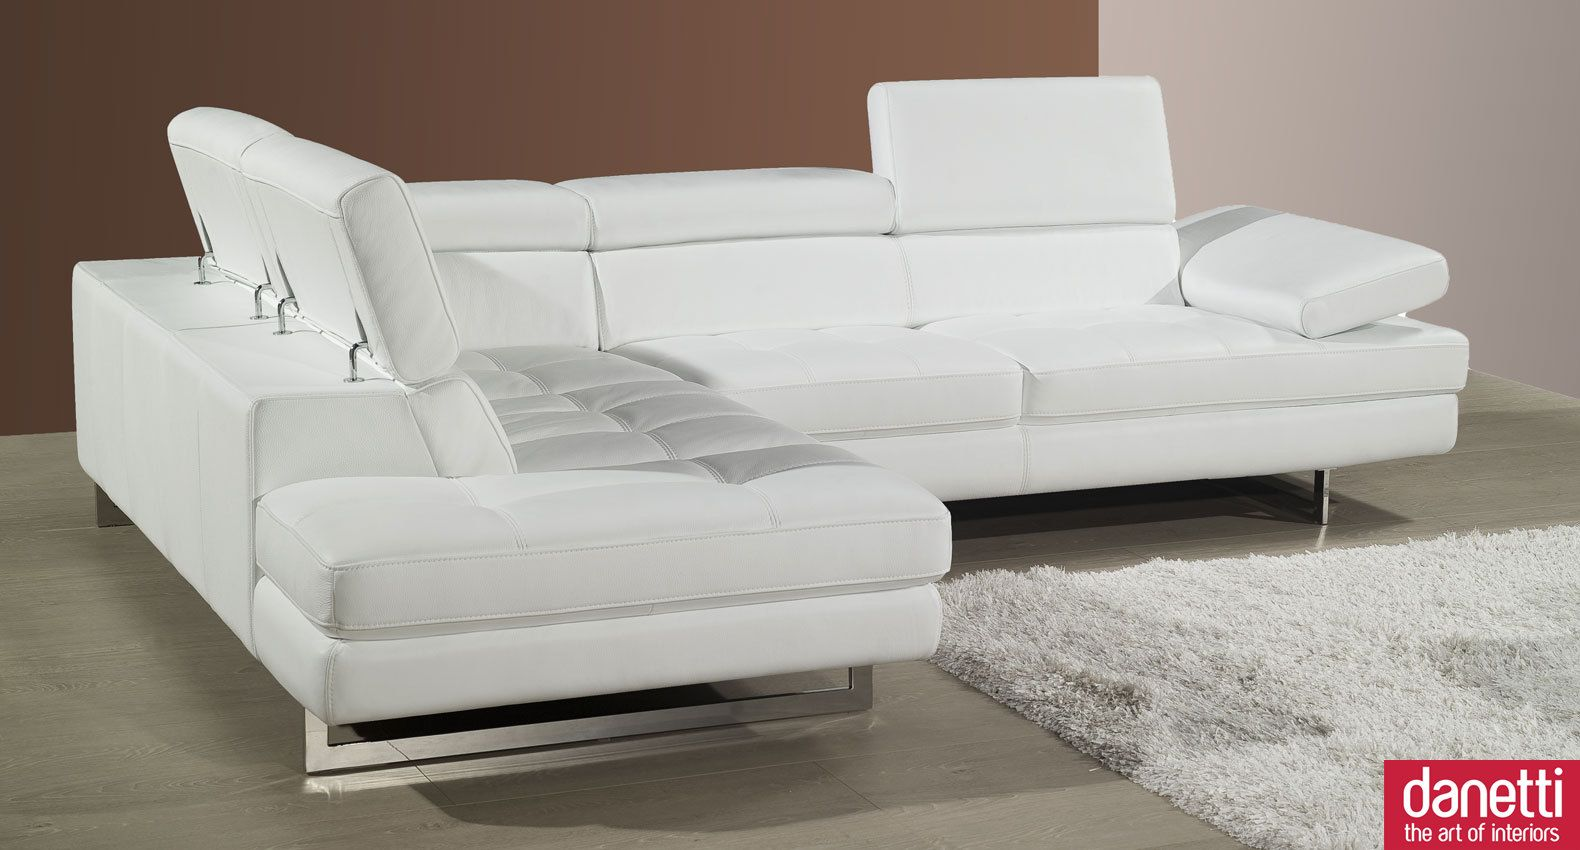 modern line furniture sofa sleepers small designer sofas white leather couchimage gallery image